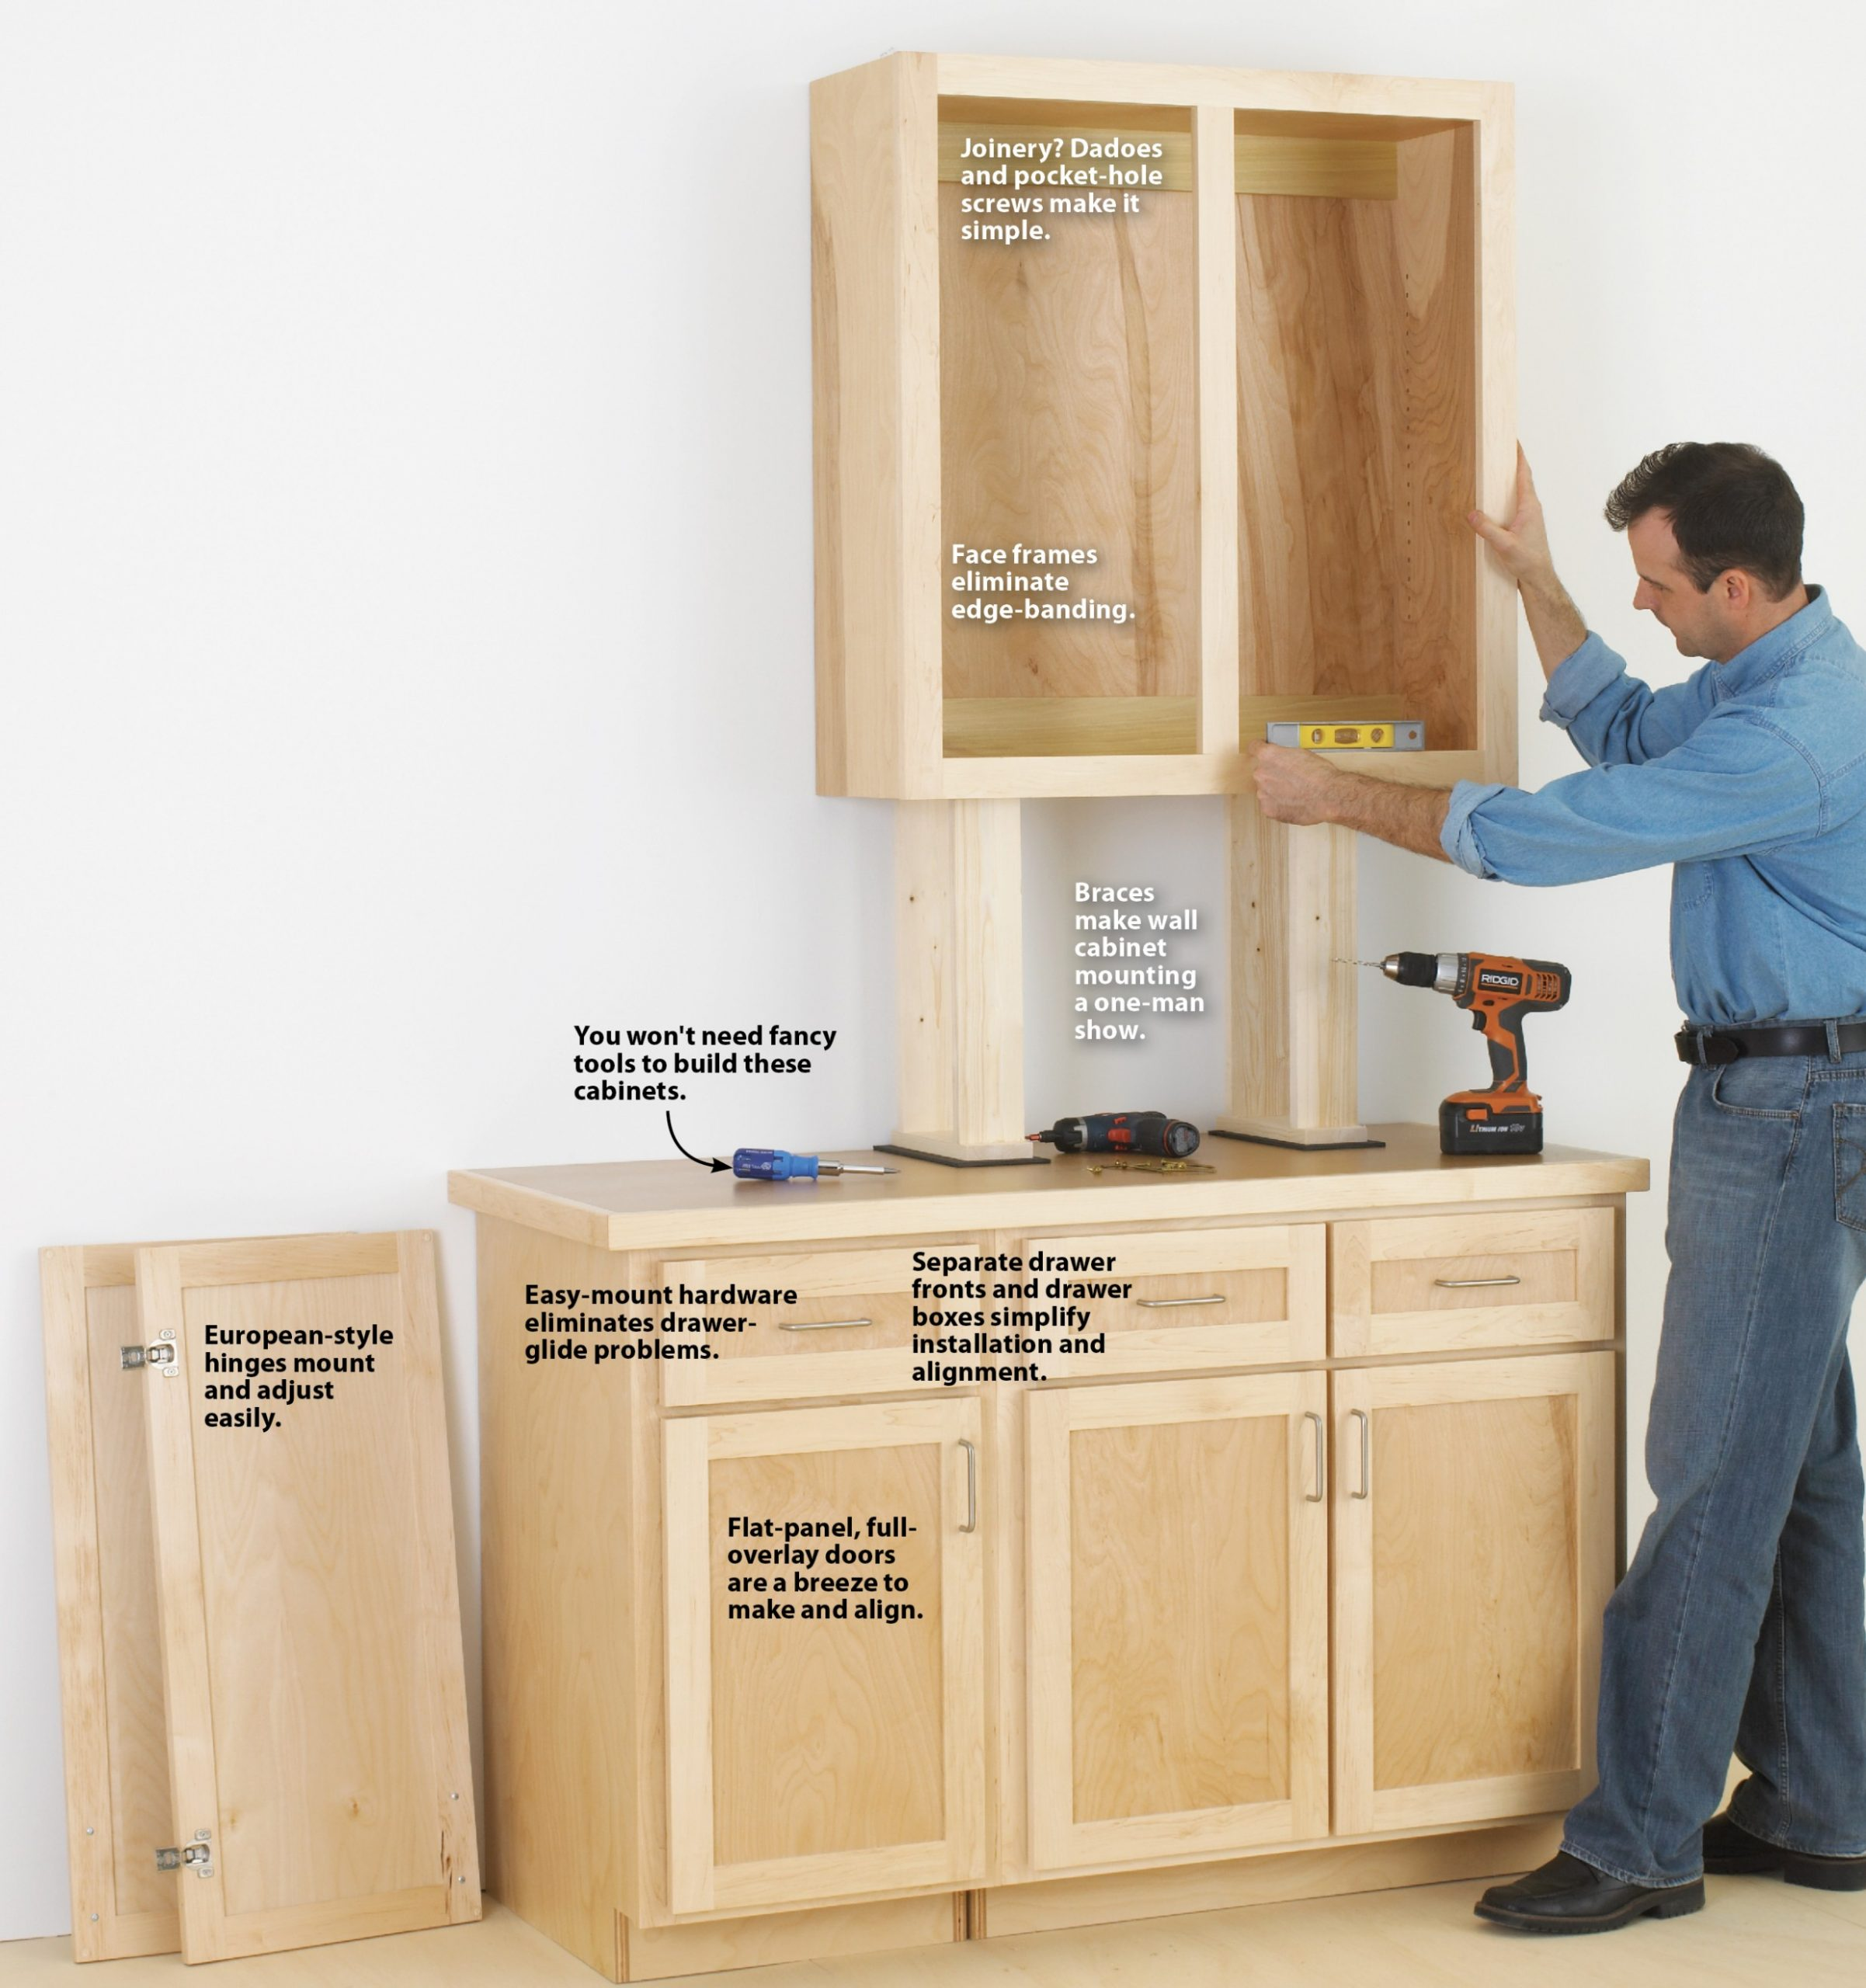 Make Cabinets the Easy Way  WOOD Magazine - Wall Framing For Kitchen Cabinets